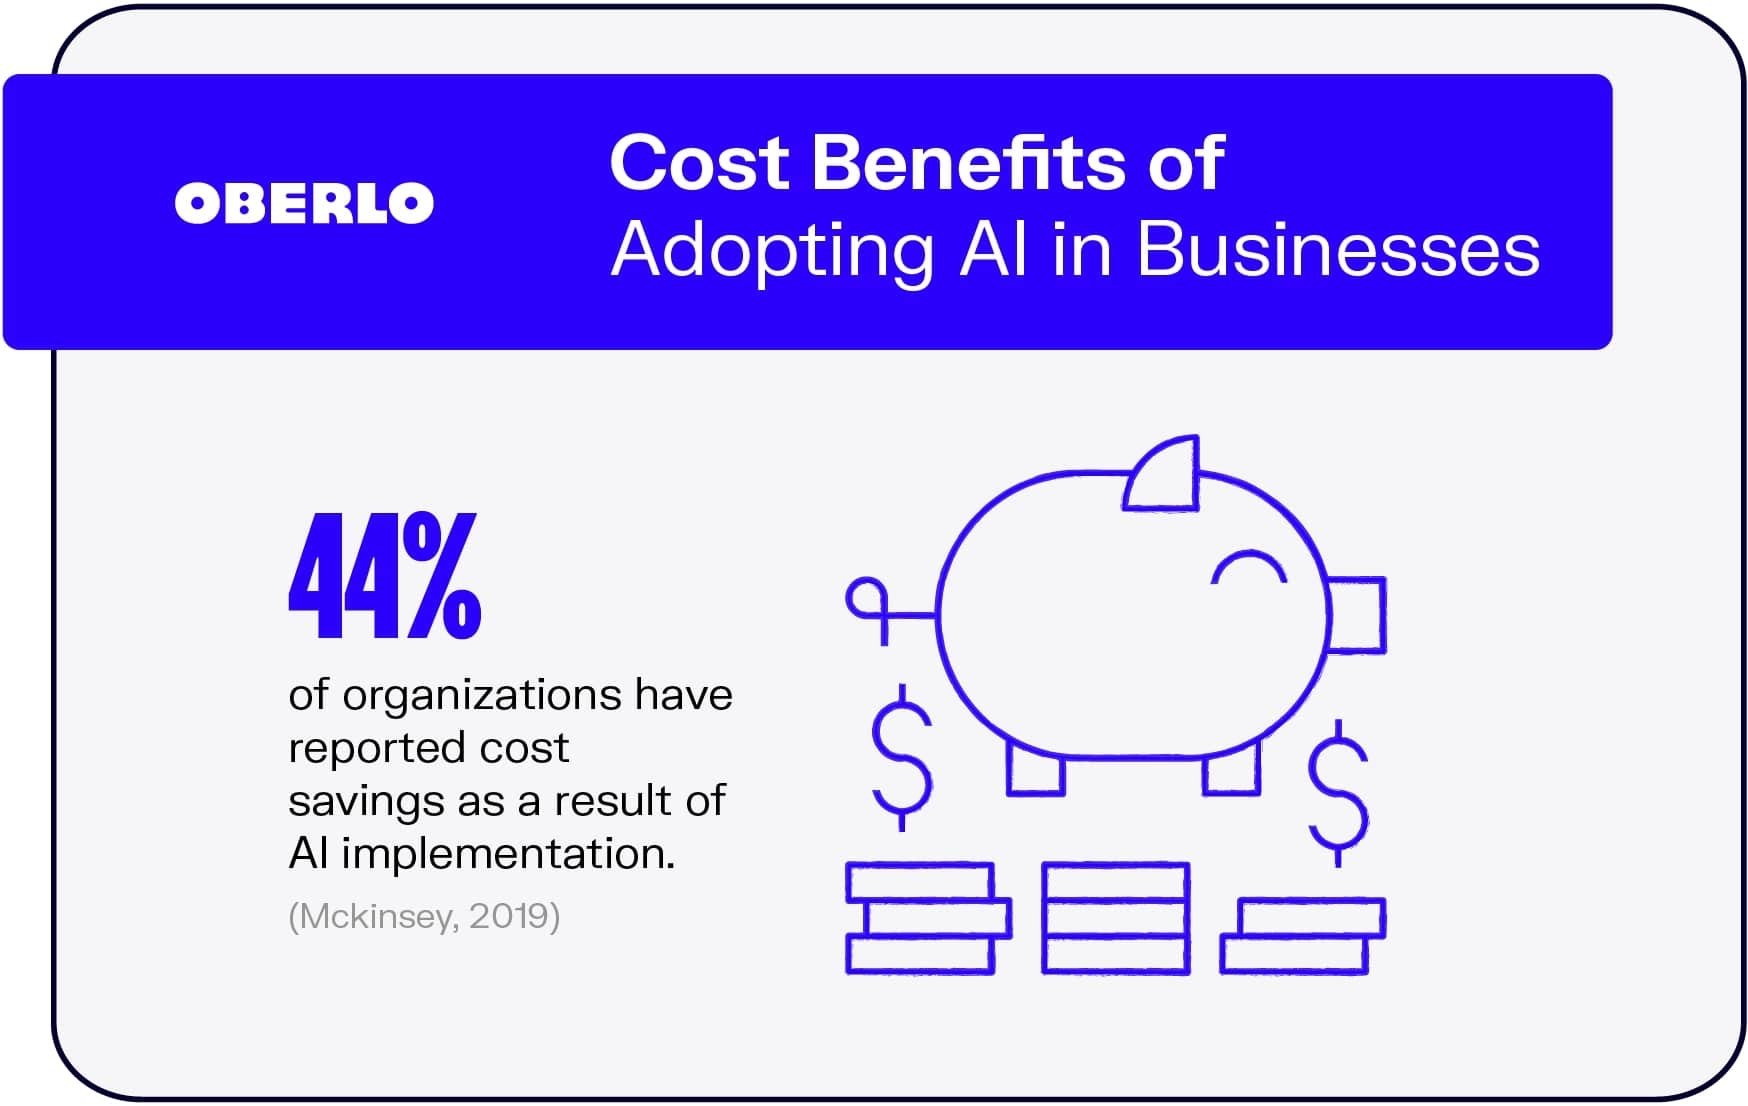 Cost Benefits of Adopting AI in Businesses